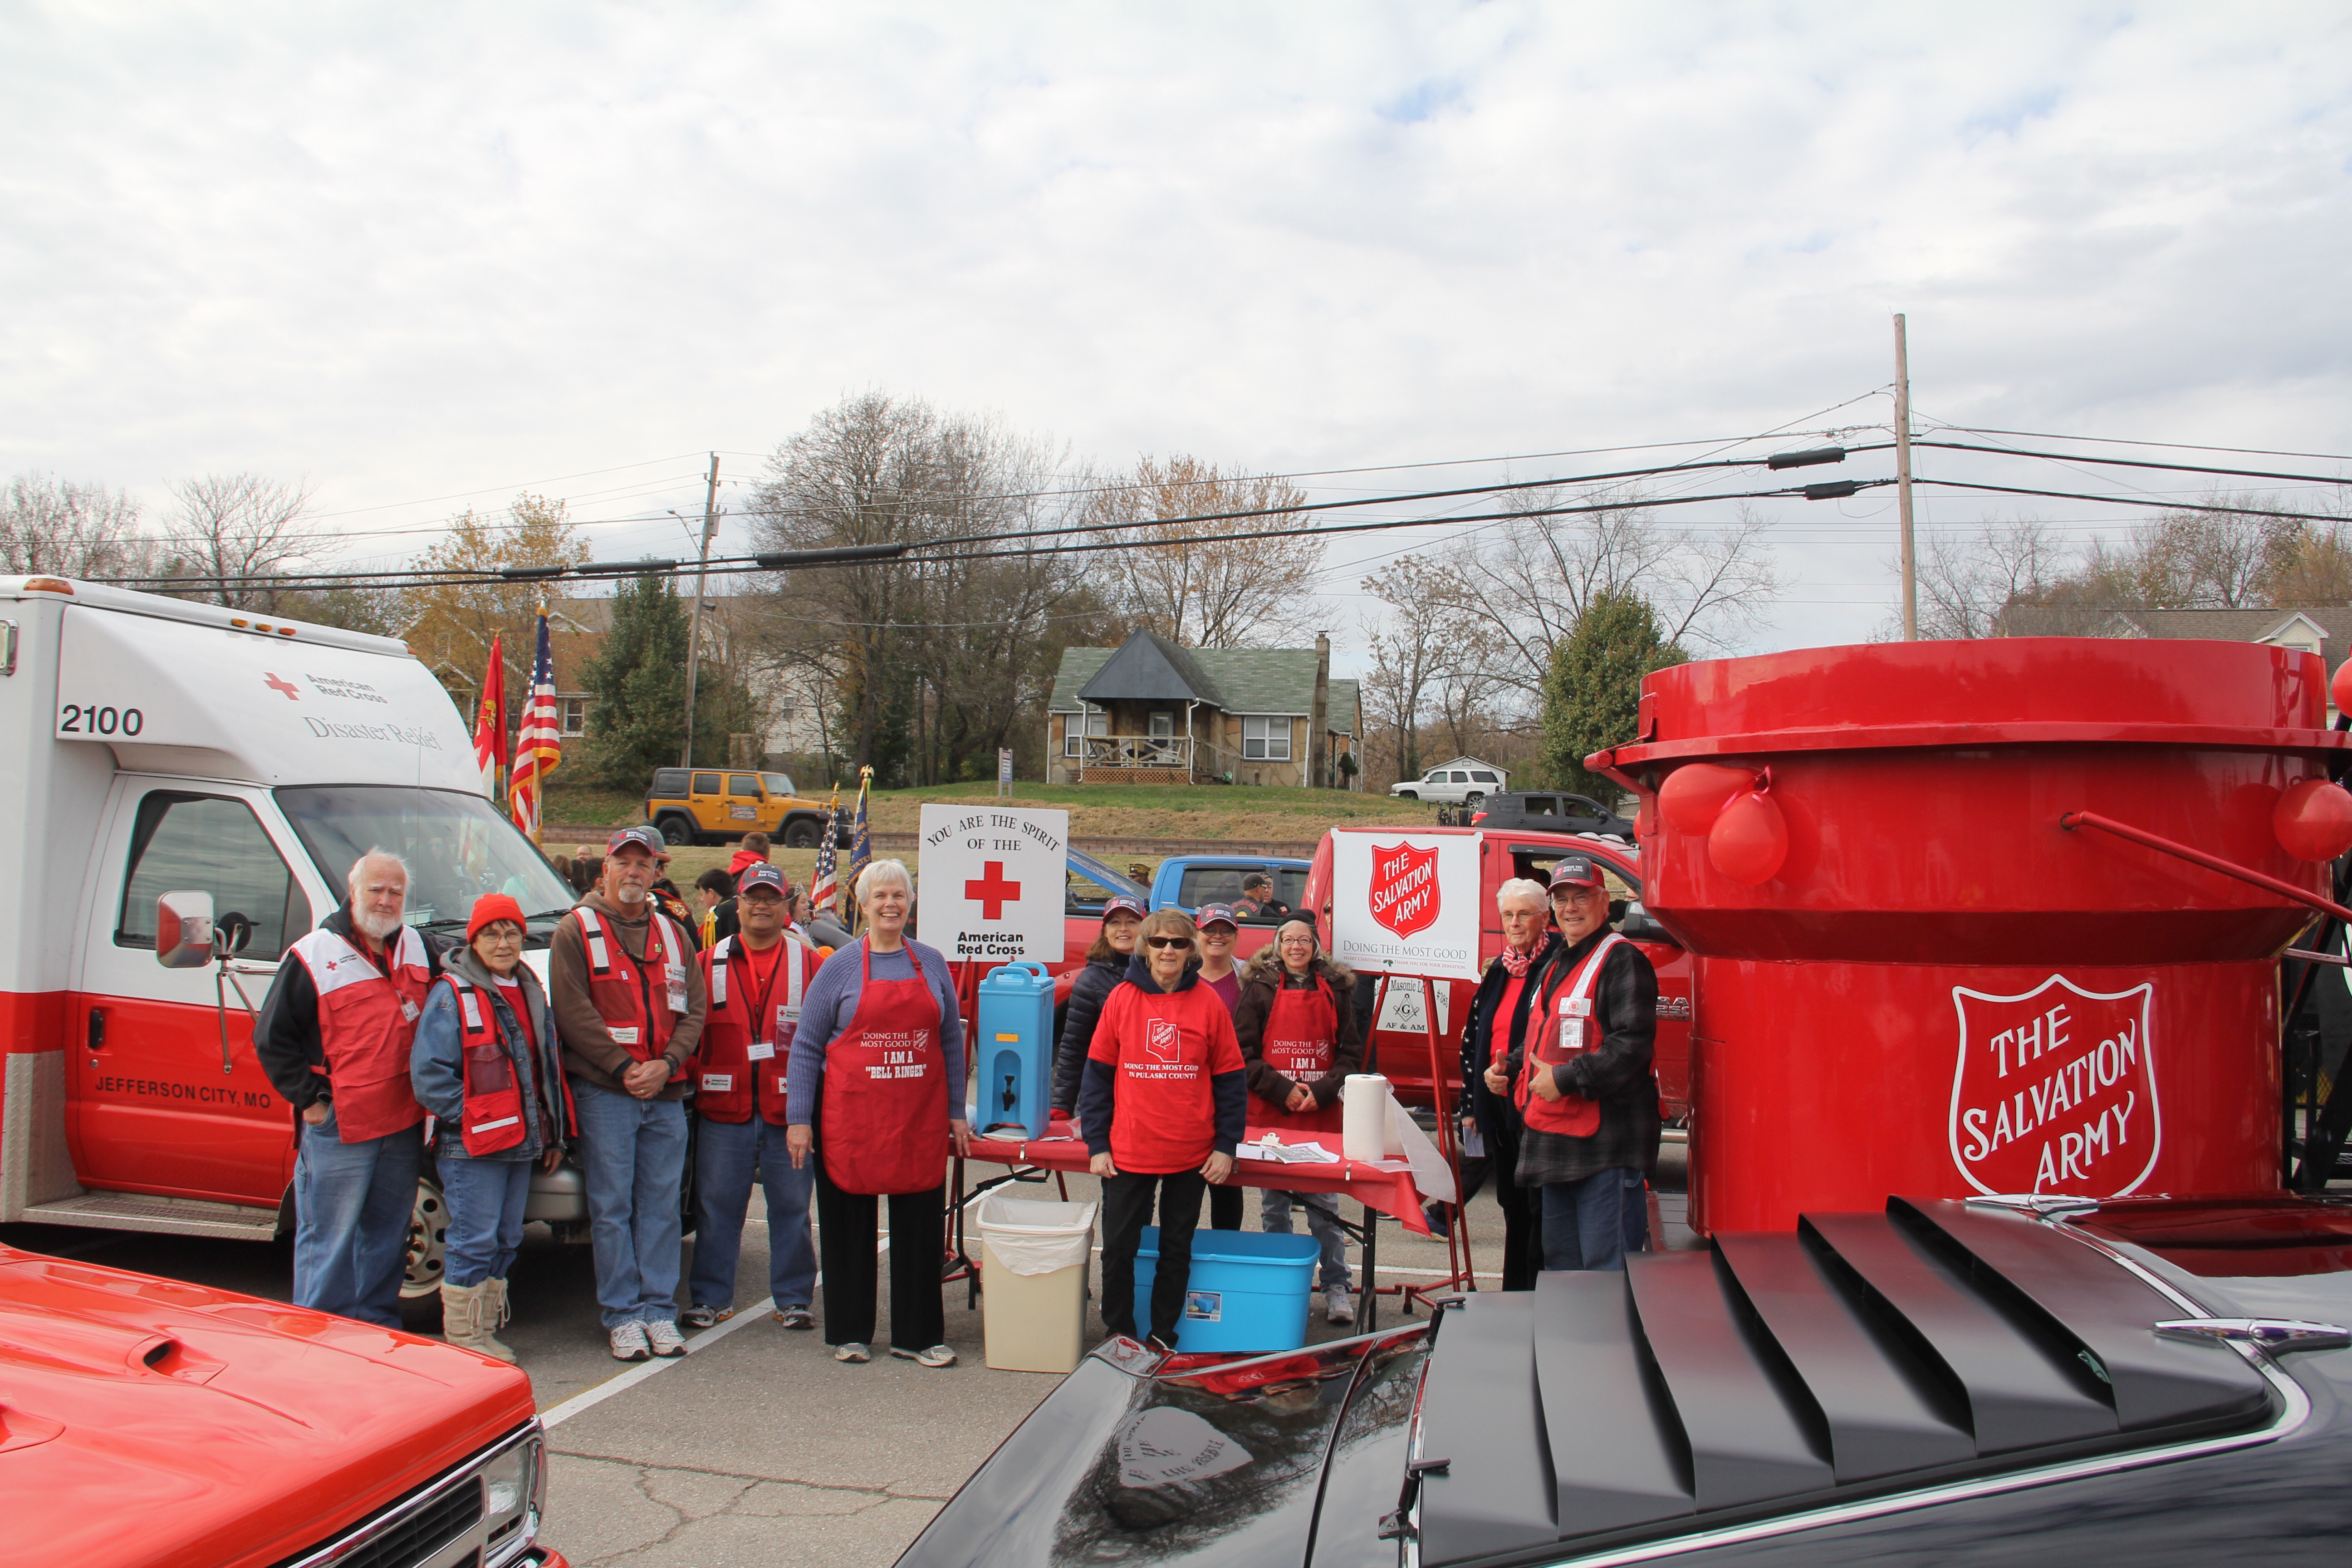 Partnering with the Red Cross to Serve Hot Coffee and Cocoa